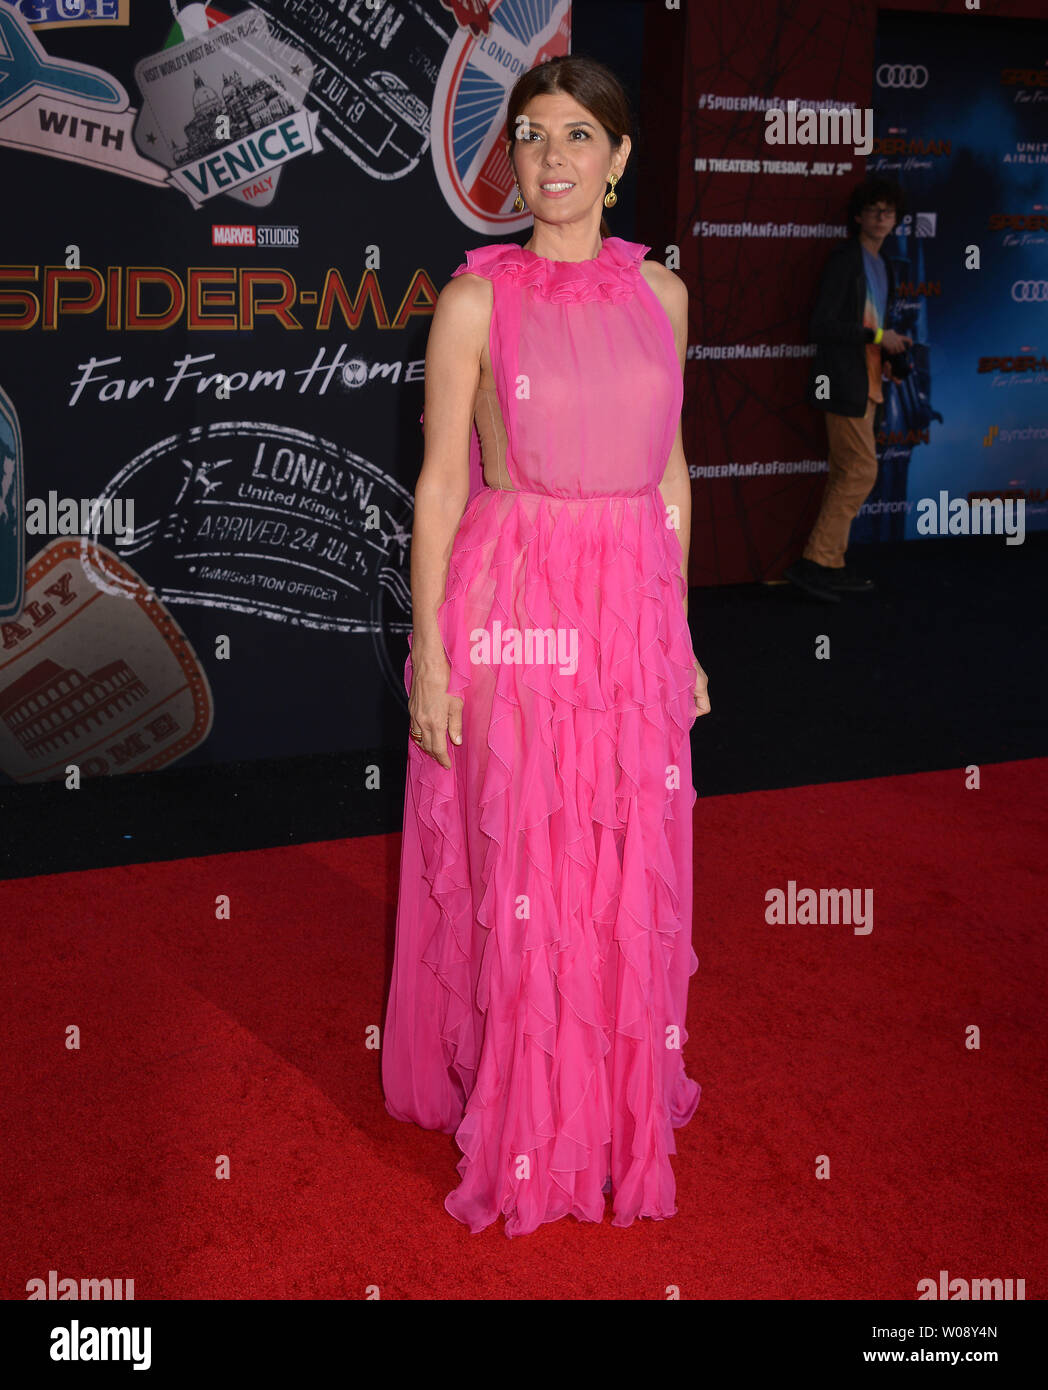 Los Angeles, USA. 26th June, 2019. Marisa Tomei 043 arrives for the premiere of Sony Pictures' 'Spider-Man Far From Home' held at TCL Chinese Theatre on June 26, 2019 in Hollywood, California Credit: Tsuni/USA/Alamy Live News - Stock Image